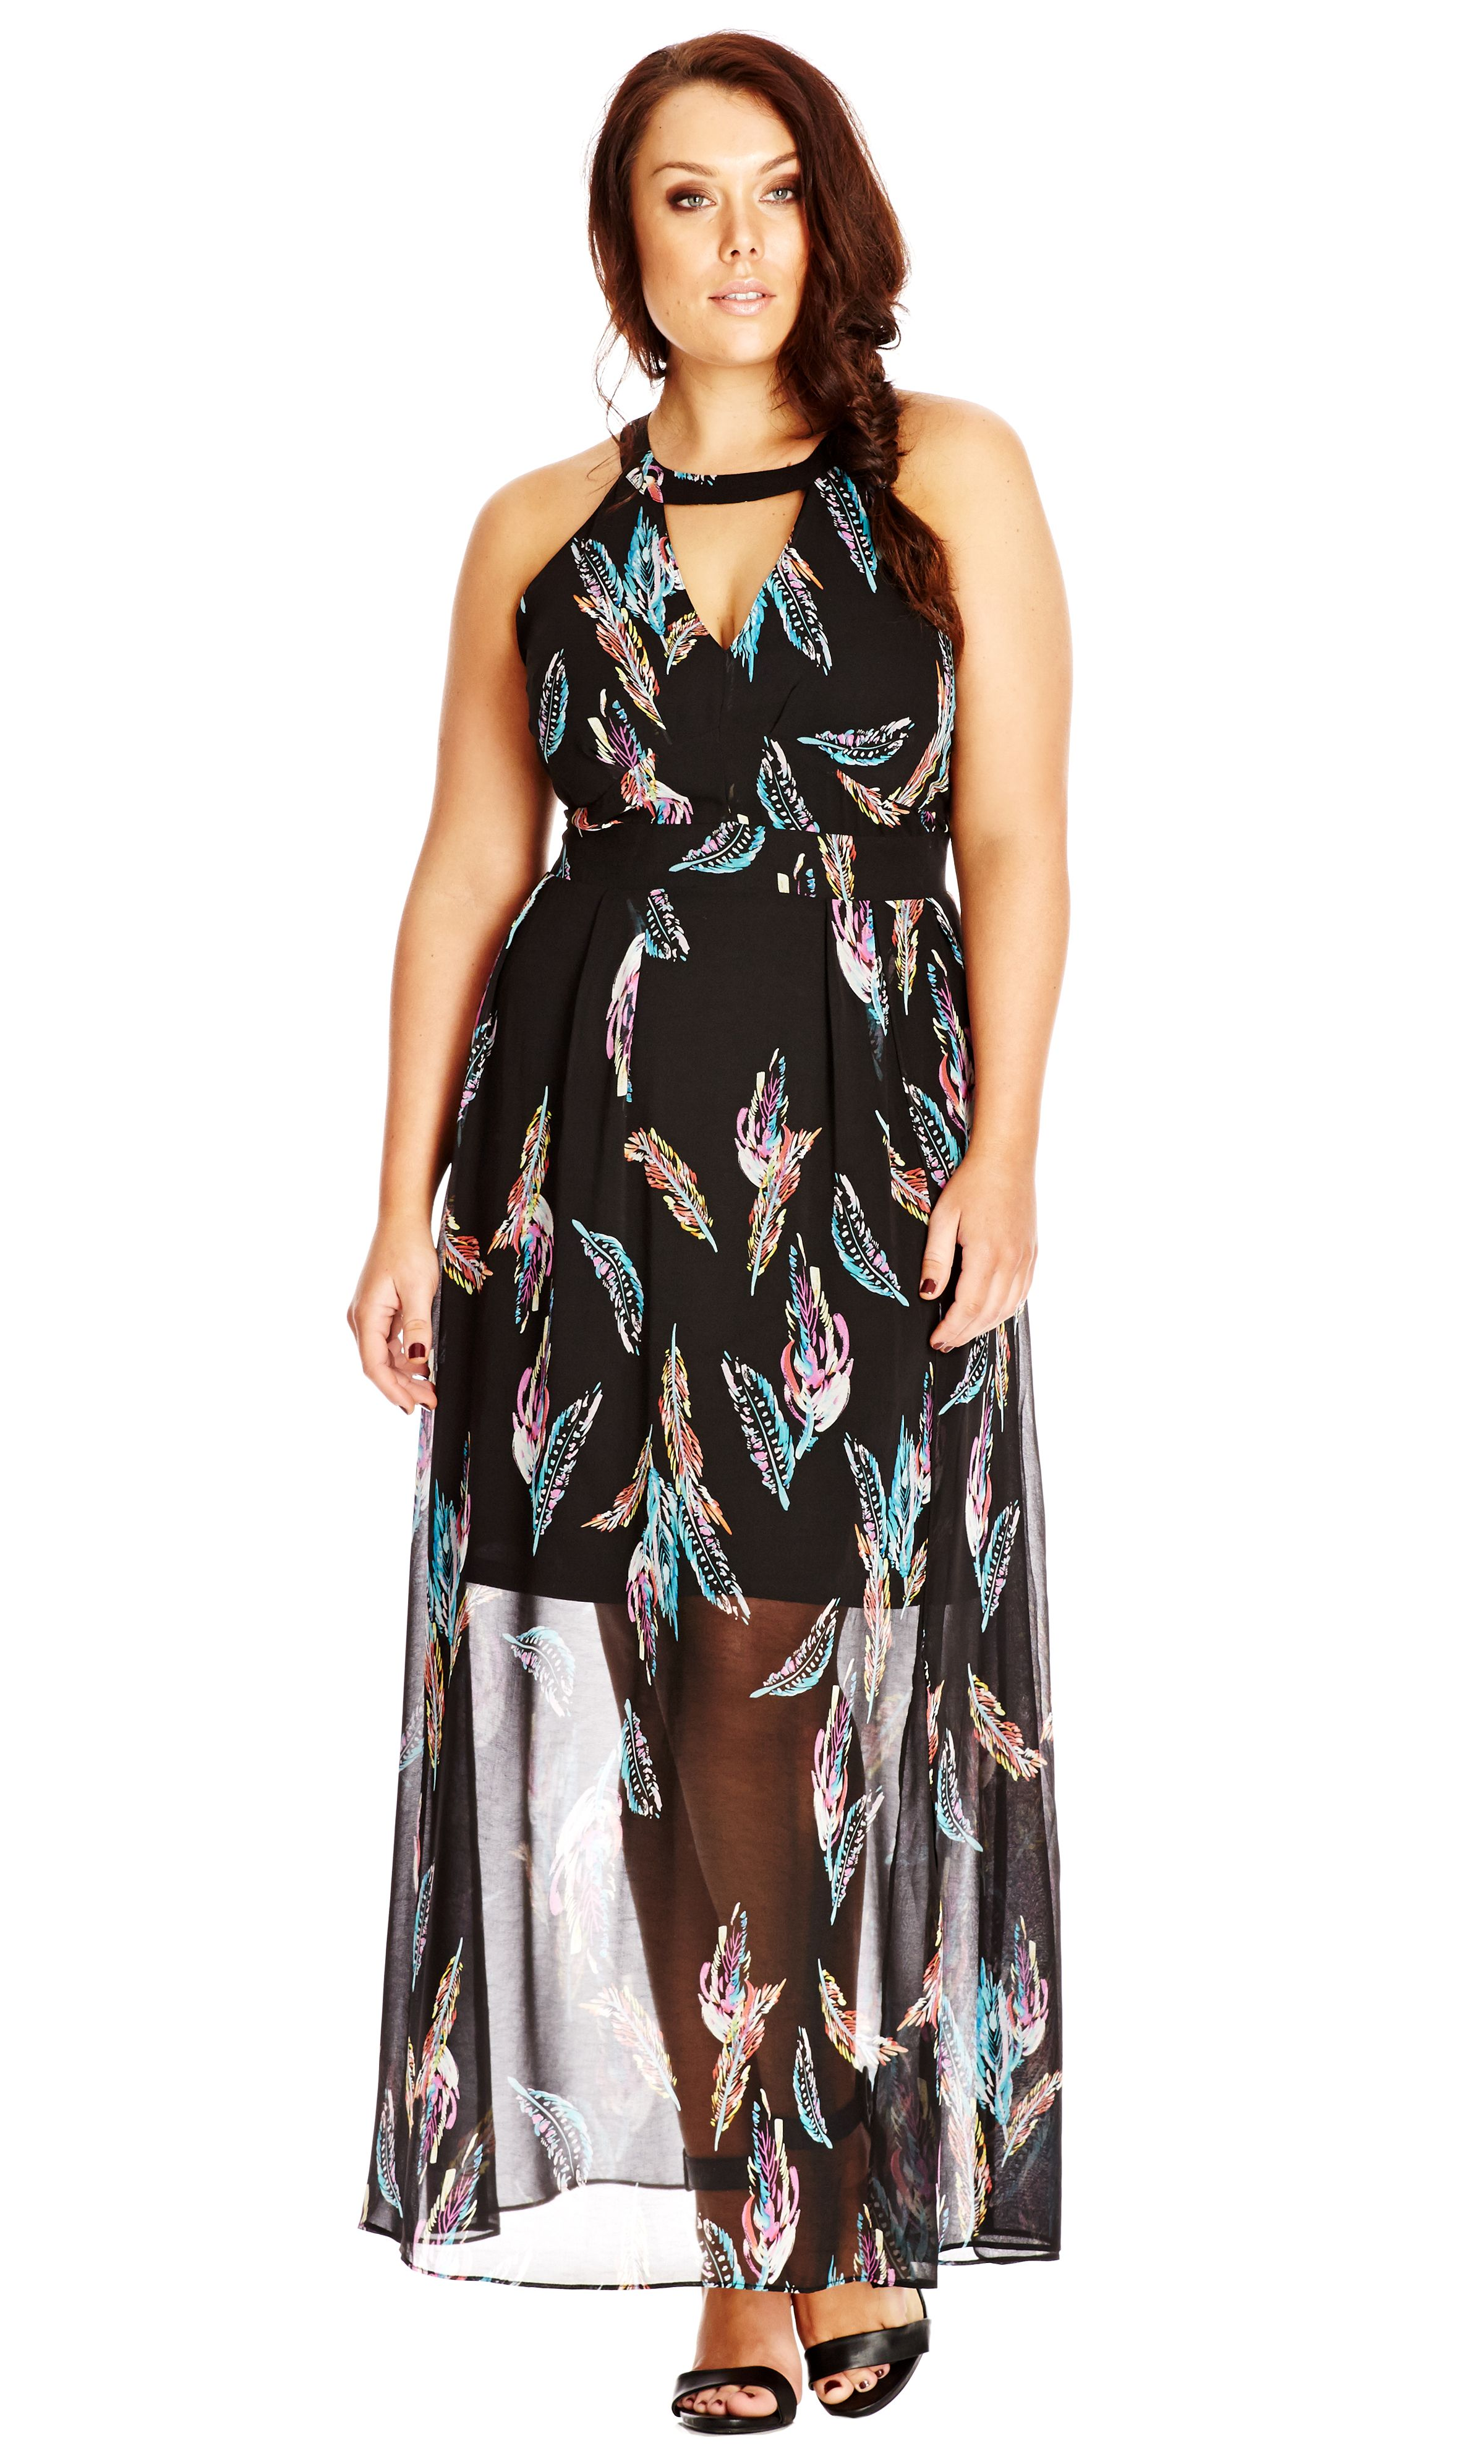 e776268ad481 City Chic Multi Feather Maxi Dress - Women s Plus Size Fashion City Chic -  City Chic Your Leading Plus Size Fashion Destination  citychic   citychiconline ...